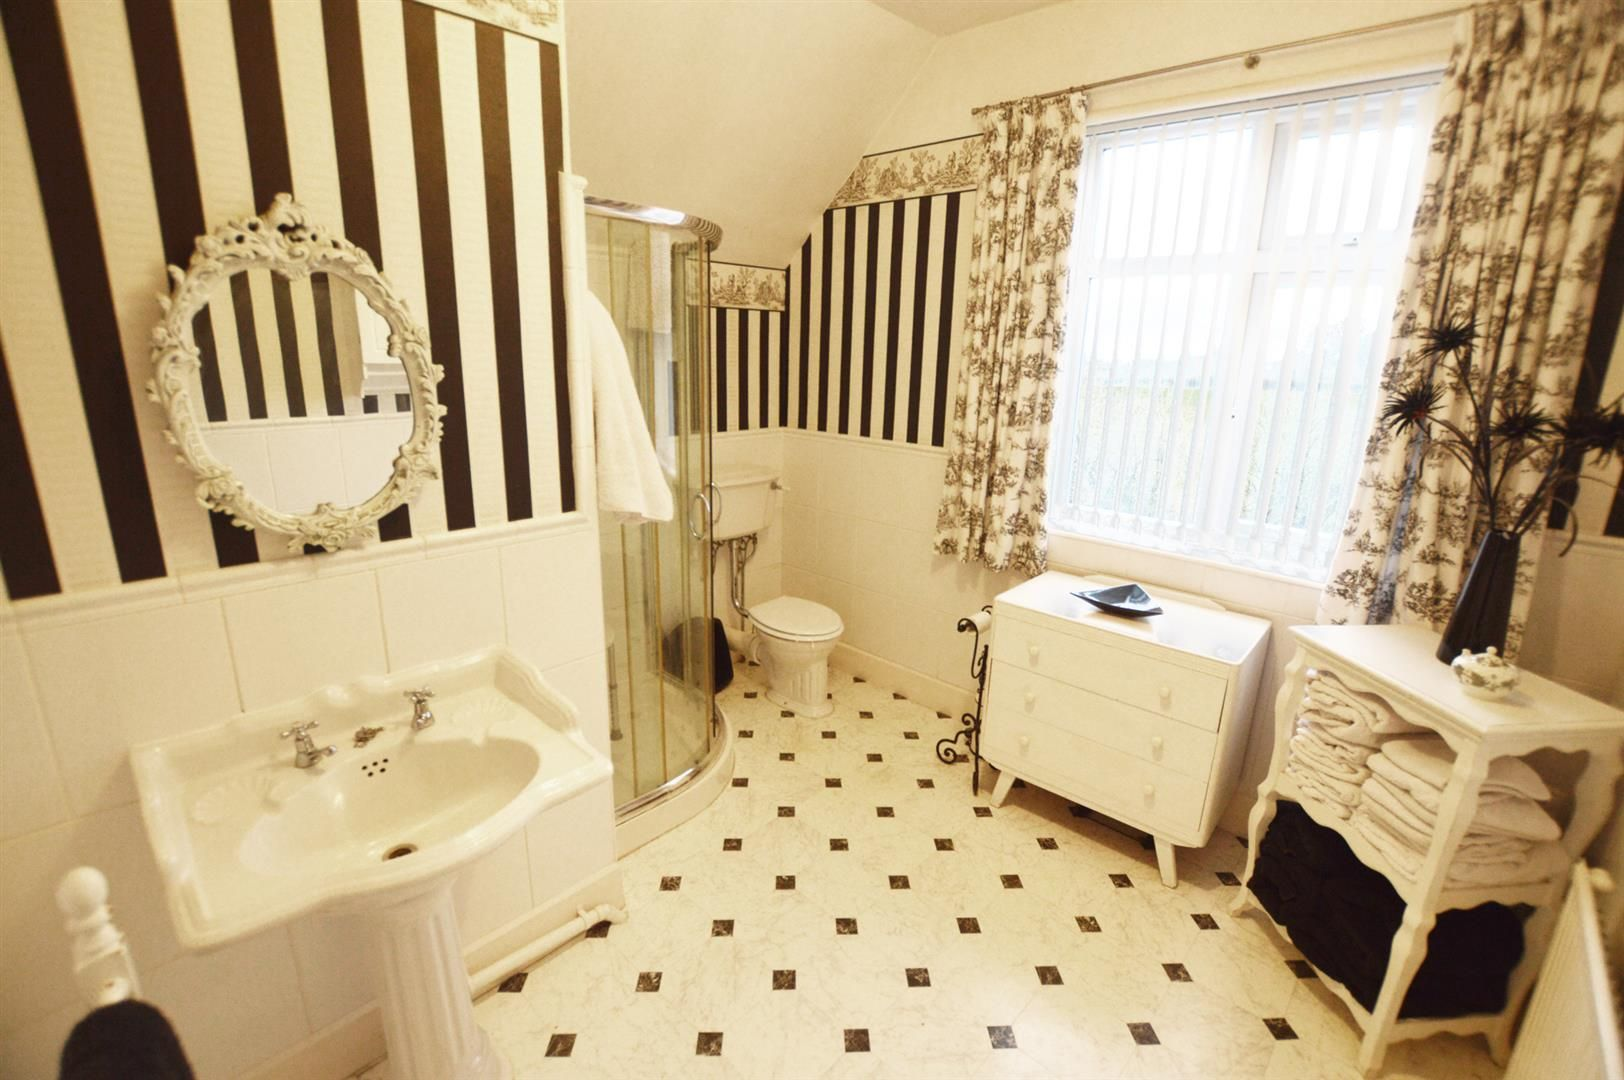 4 bed semi-detached for sale in Leysters 9